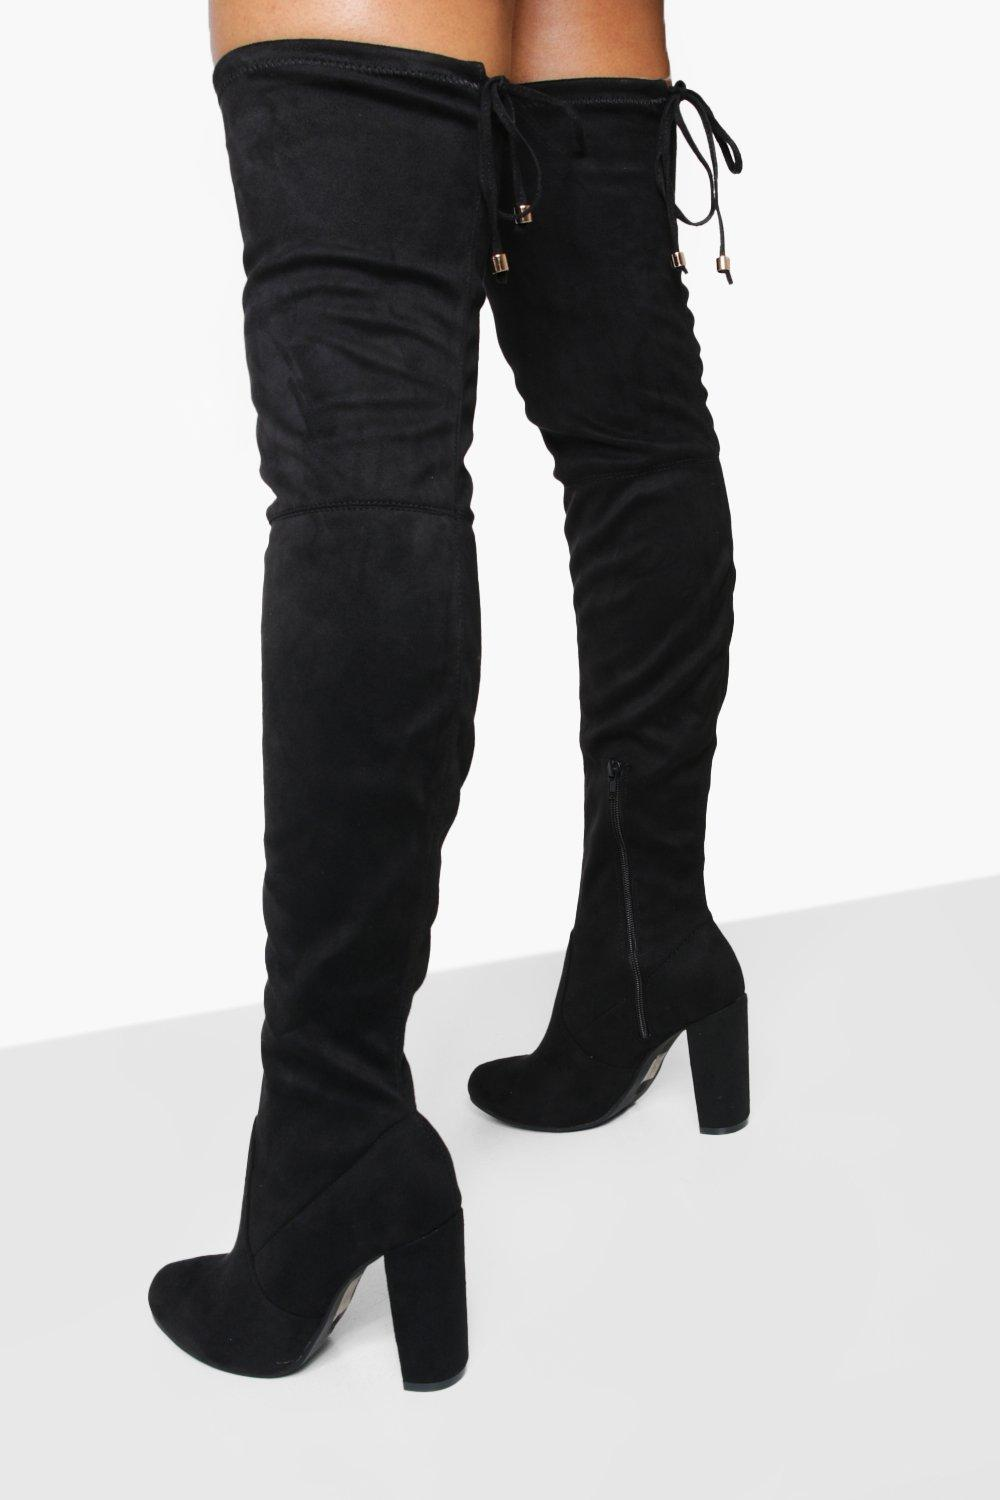 boohoo Womens Block Heel Tie Back Thigh High Boots - Black - 6, Black